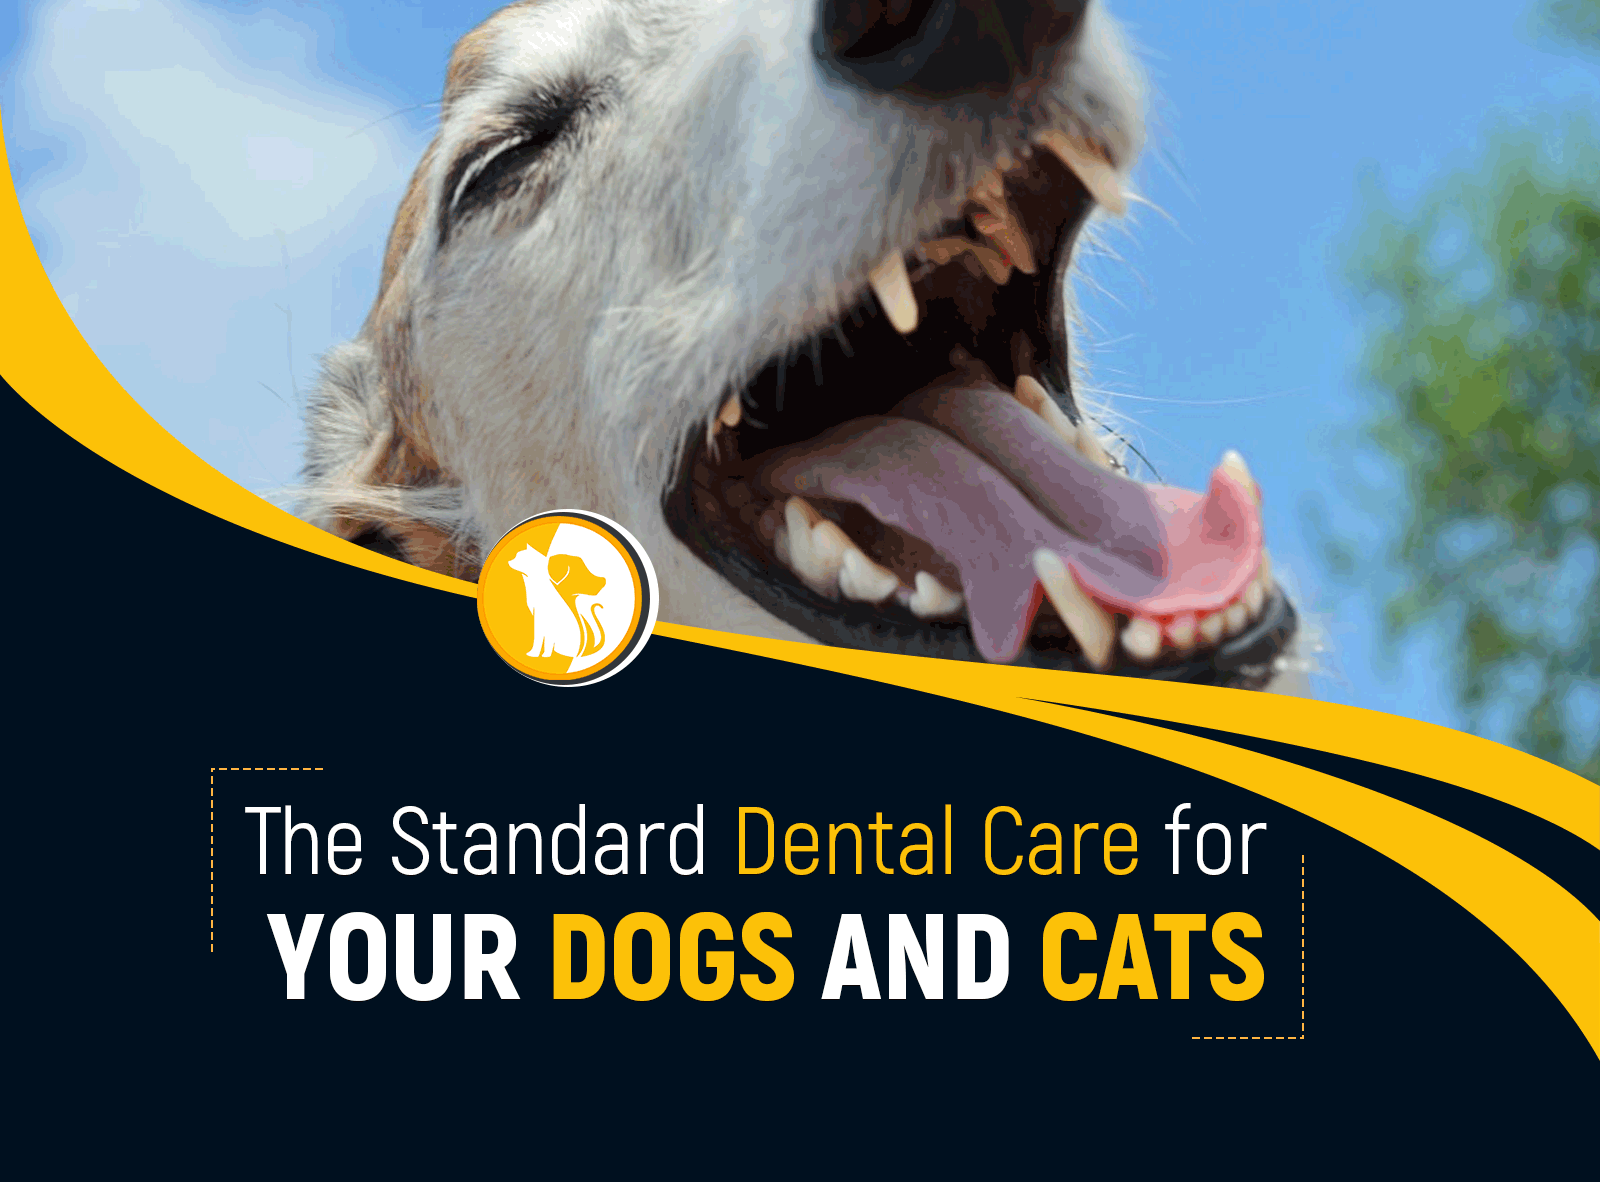 The Standard Dental Care for Your Dogs and Cats